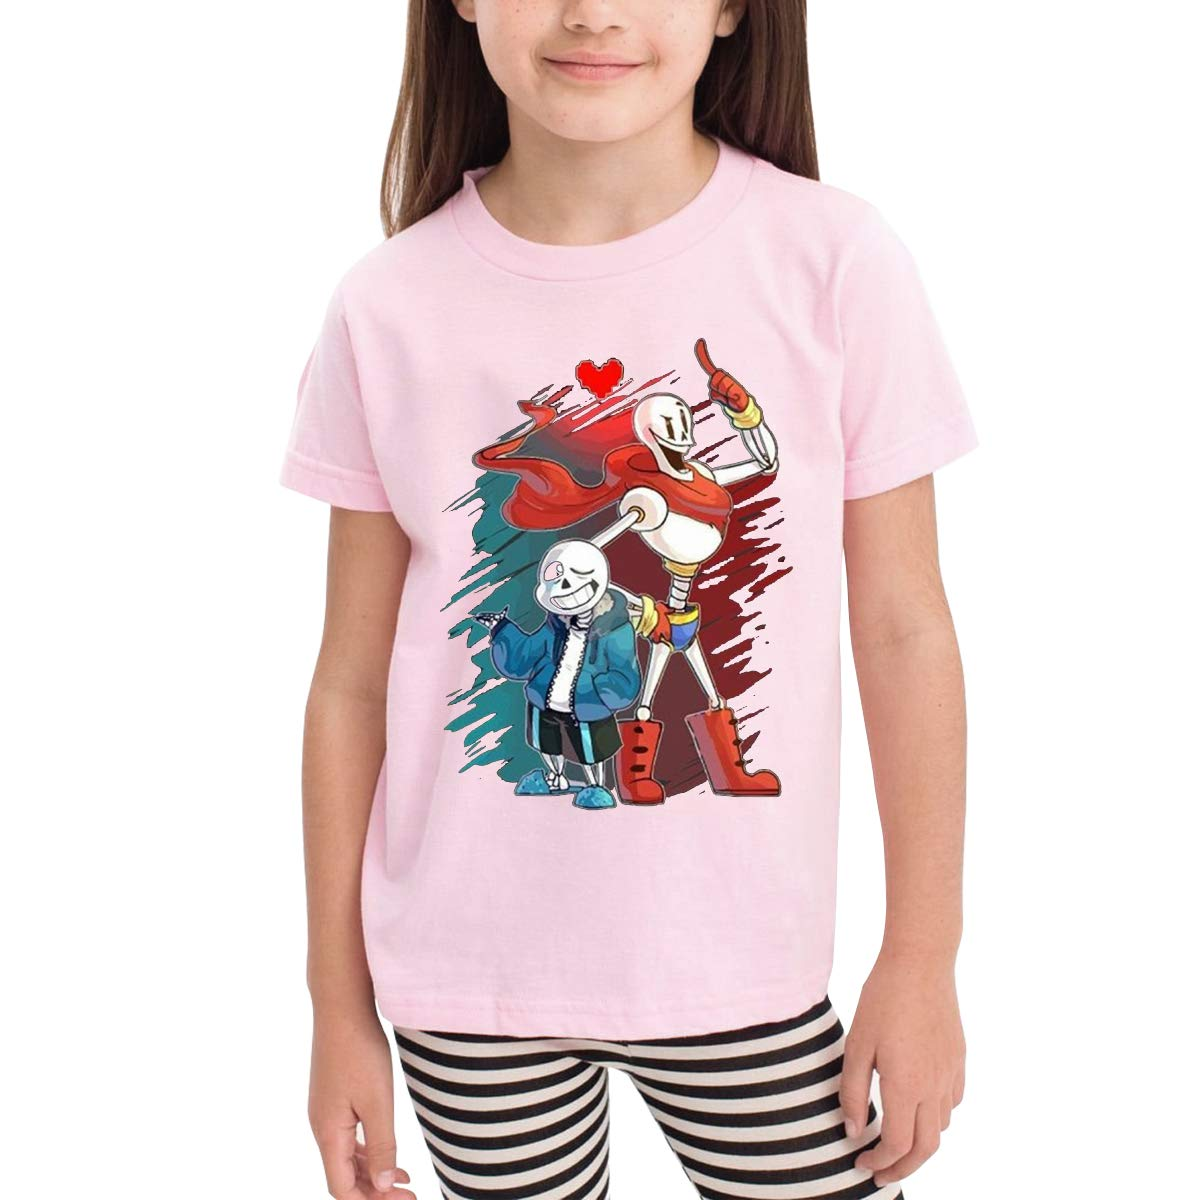 6-24 Month Baby T-Shirt Loose Self-Cultivation 2-6 Year Old Childrens T-Shirt San and Papyrus Logo Pink